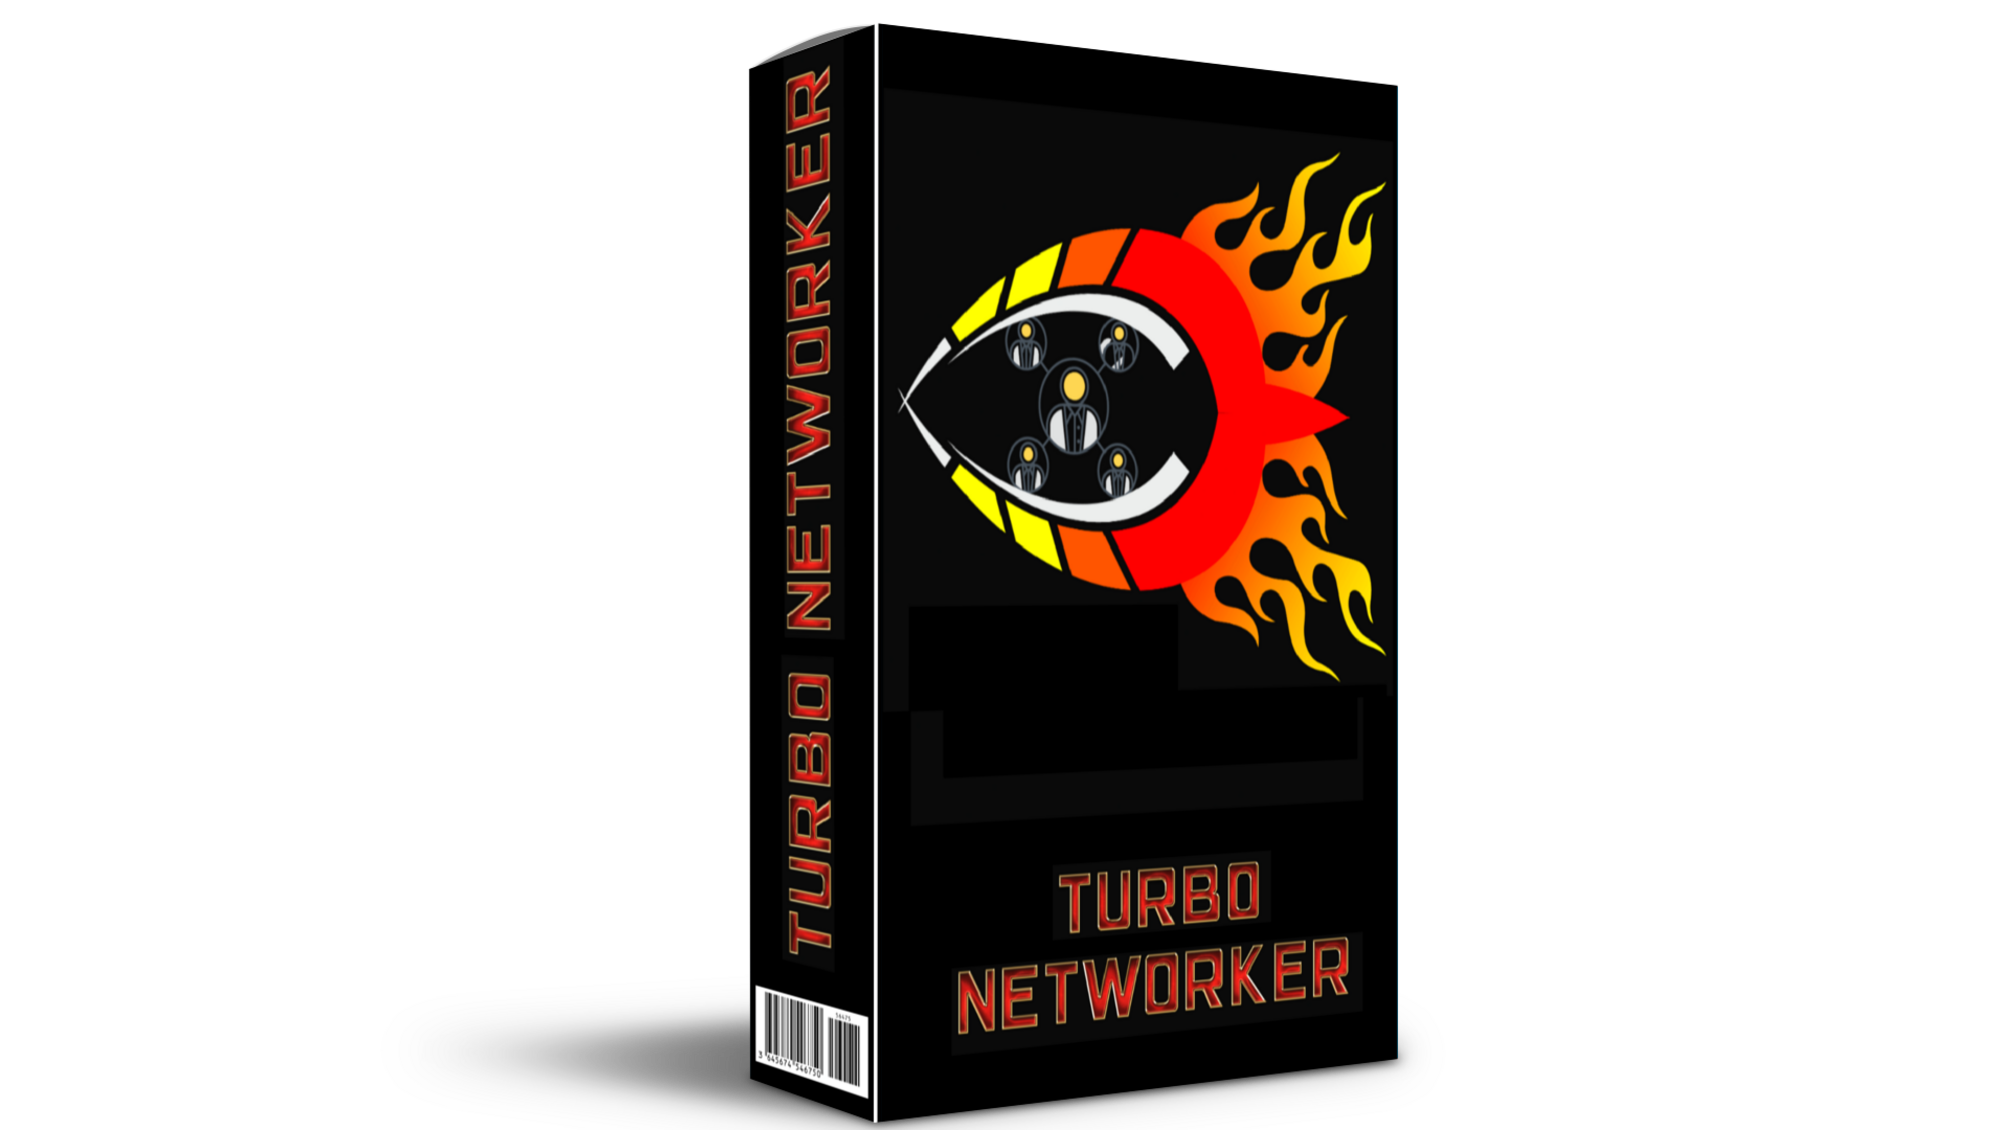 Turbo Net worker